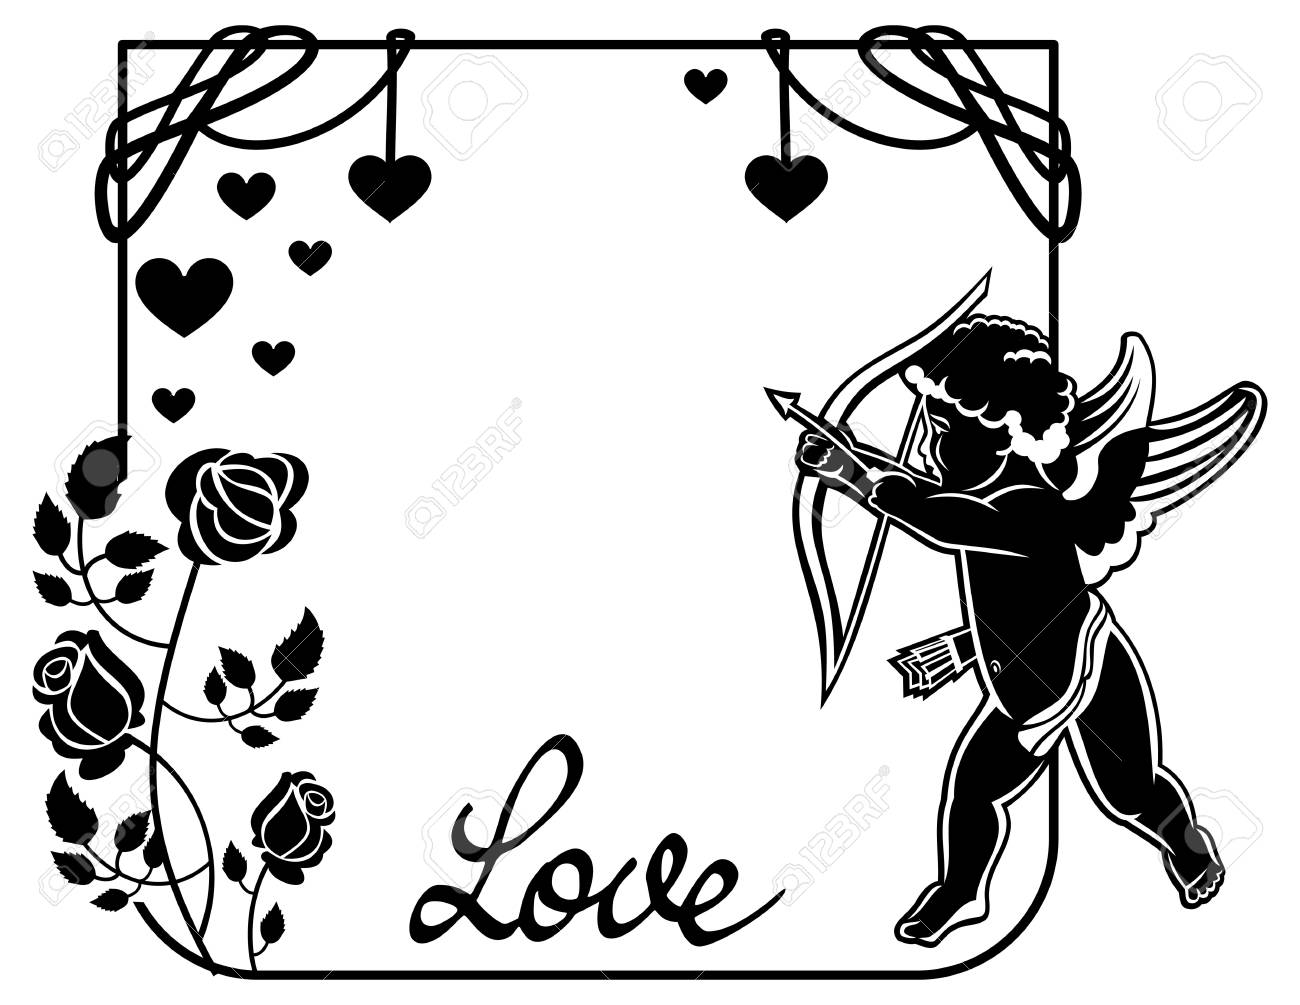 Line Art Of Heart : Cupid with bow hunting for hearts. black and white frame